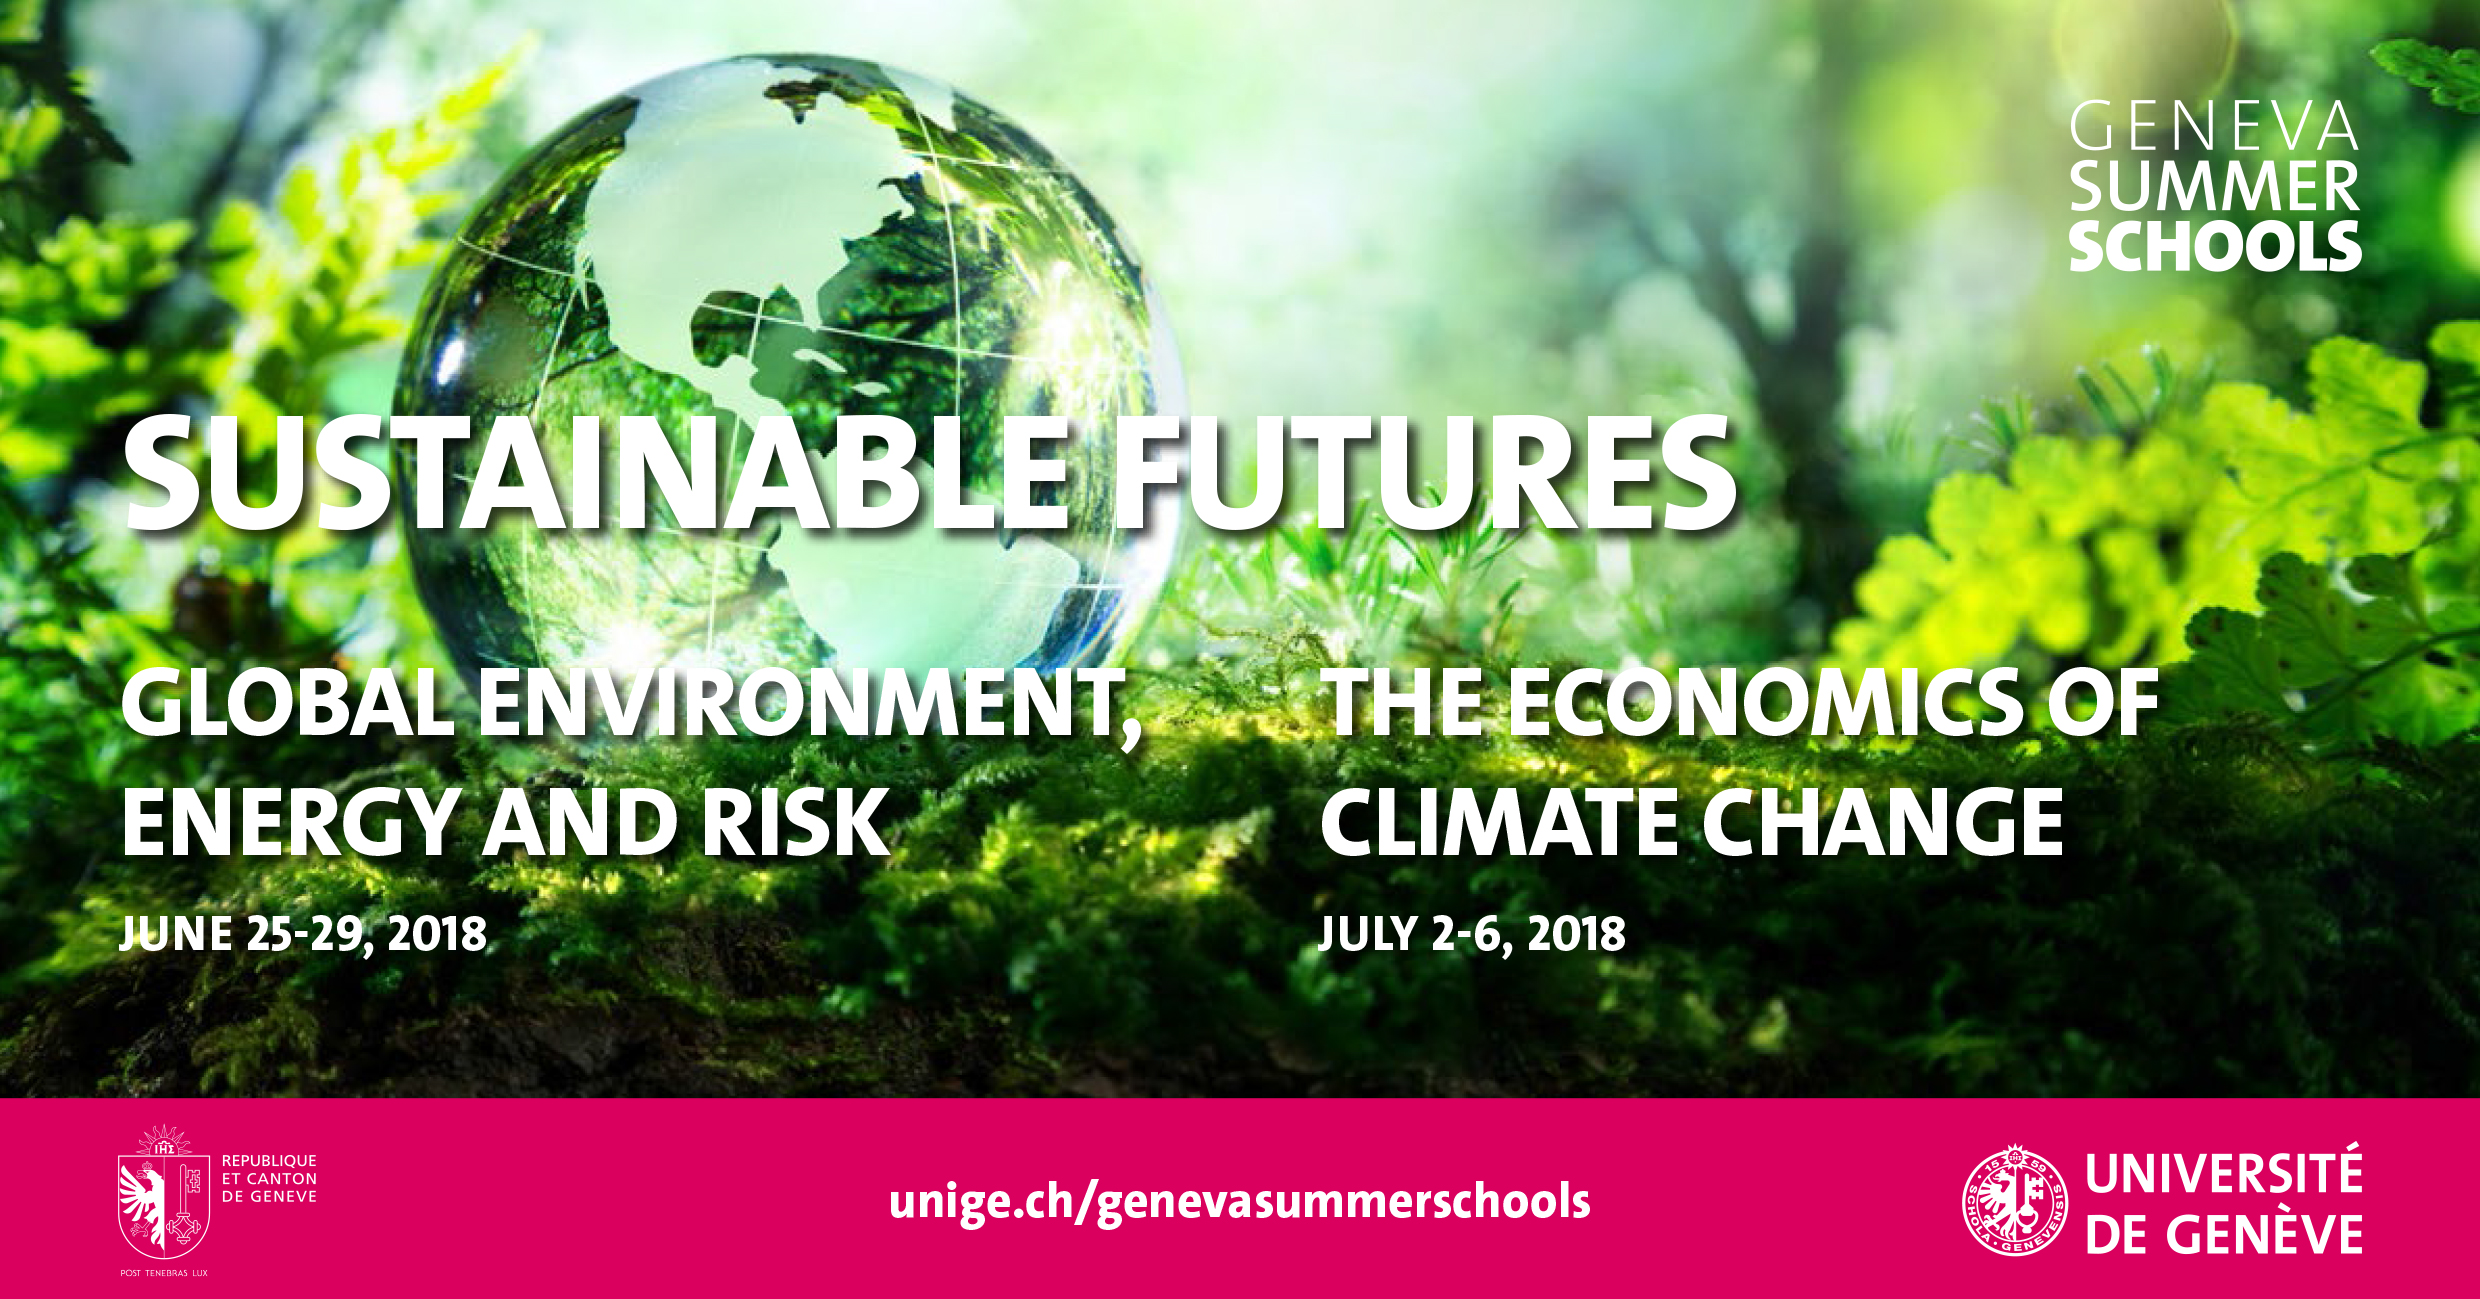 Flyer210x110-GSS-SustainableFutures-2018-WEB-1.jpg